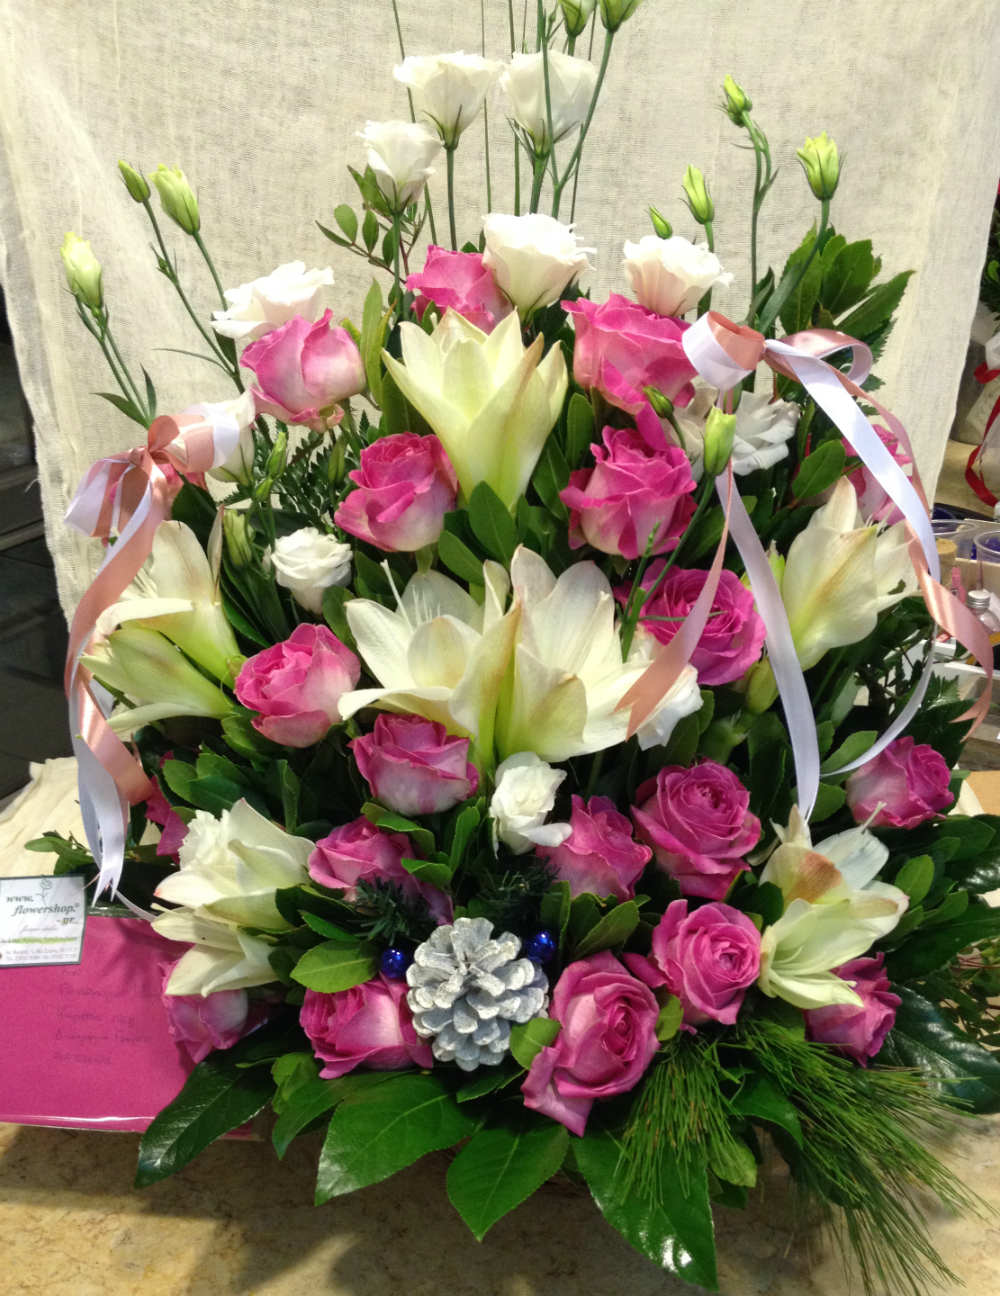 Christmas Arrangement With White Pink Flowers Decoration